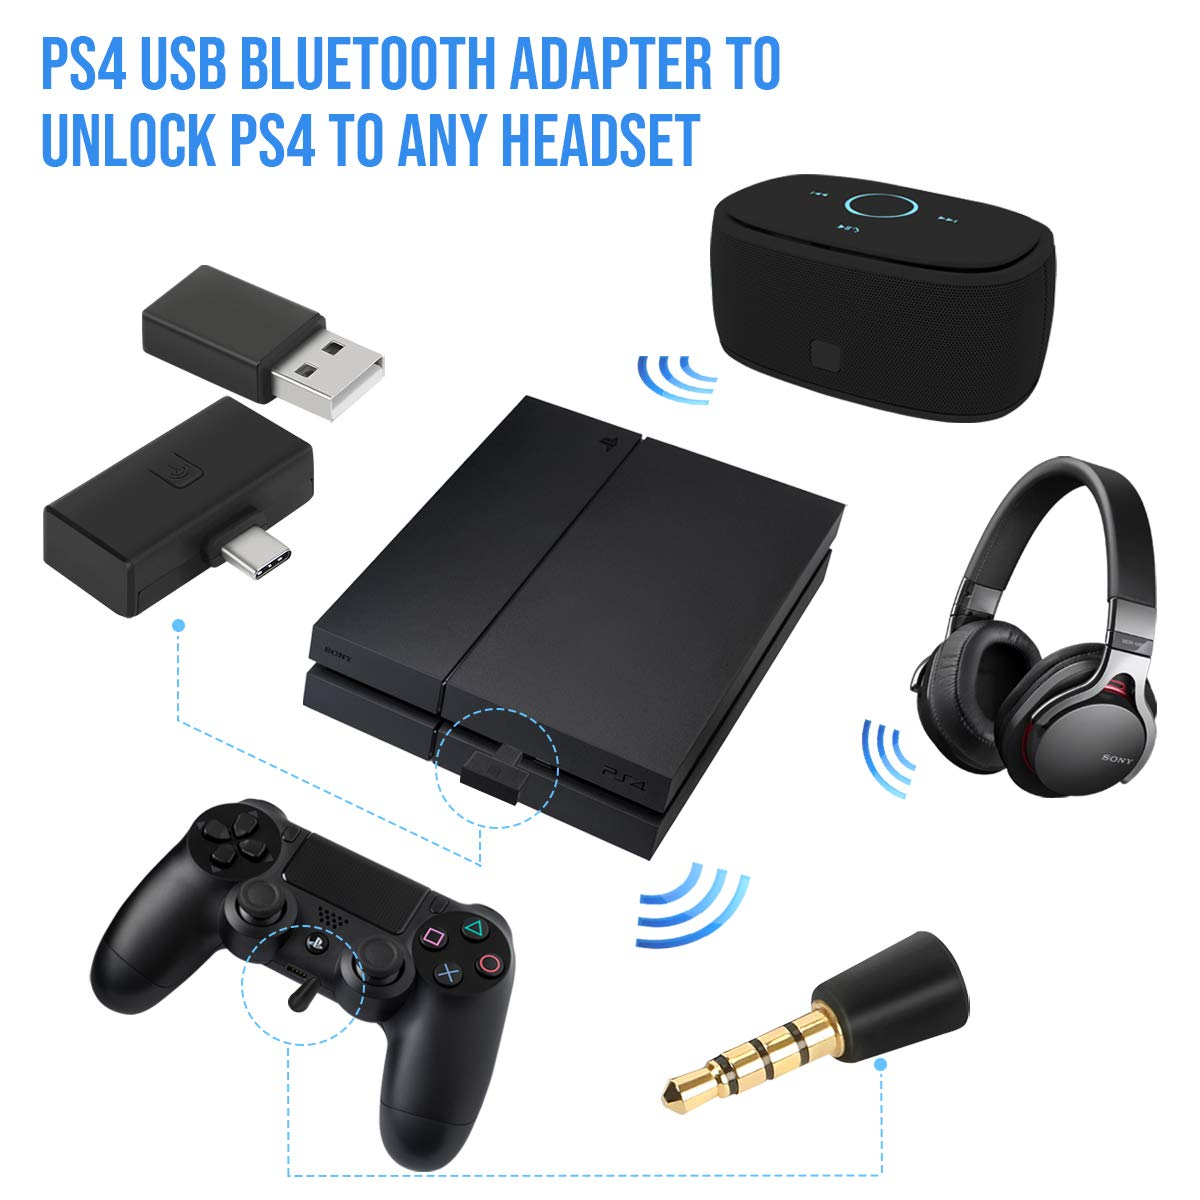 Amazon Com Hde Bluetooth Dongle Adapter For Sony Playstation 4 Ps4 Wireless Bt Audio Transmitter With Microphone Adapter For In Game Chat Audio Video Games